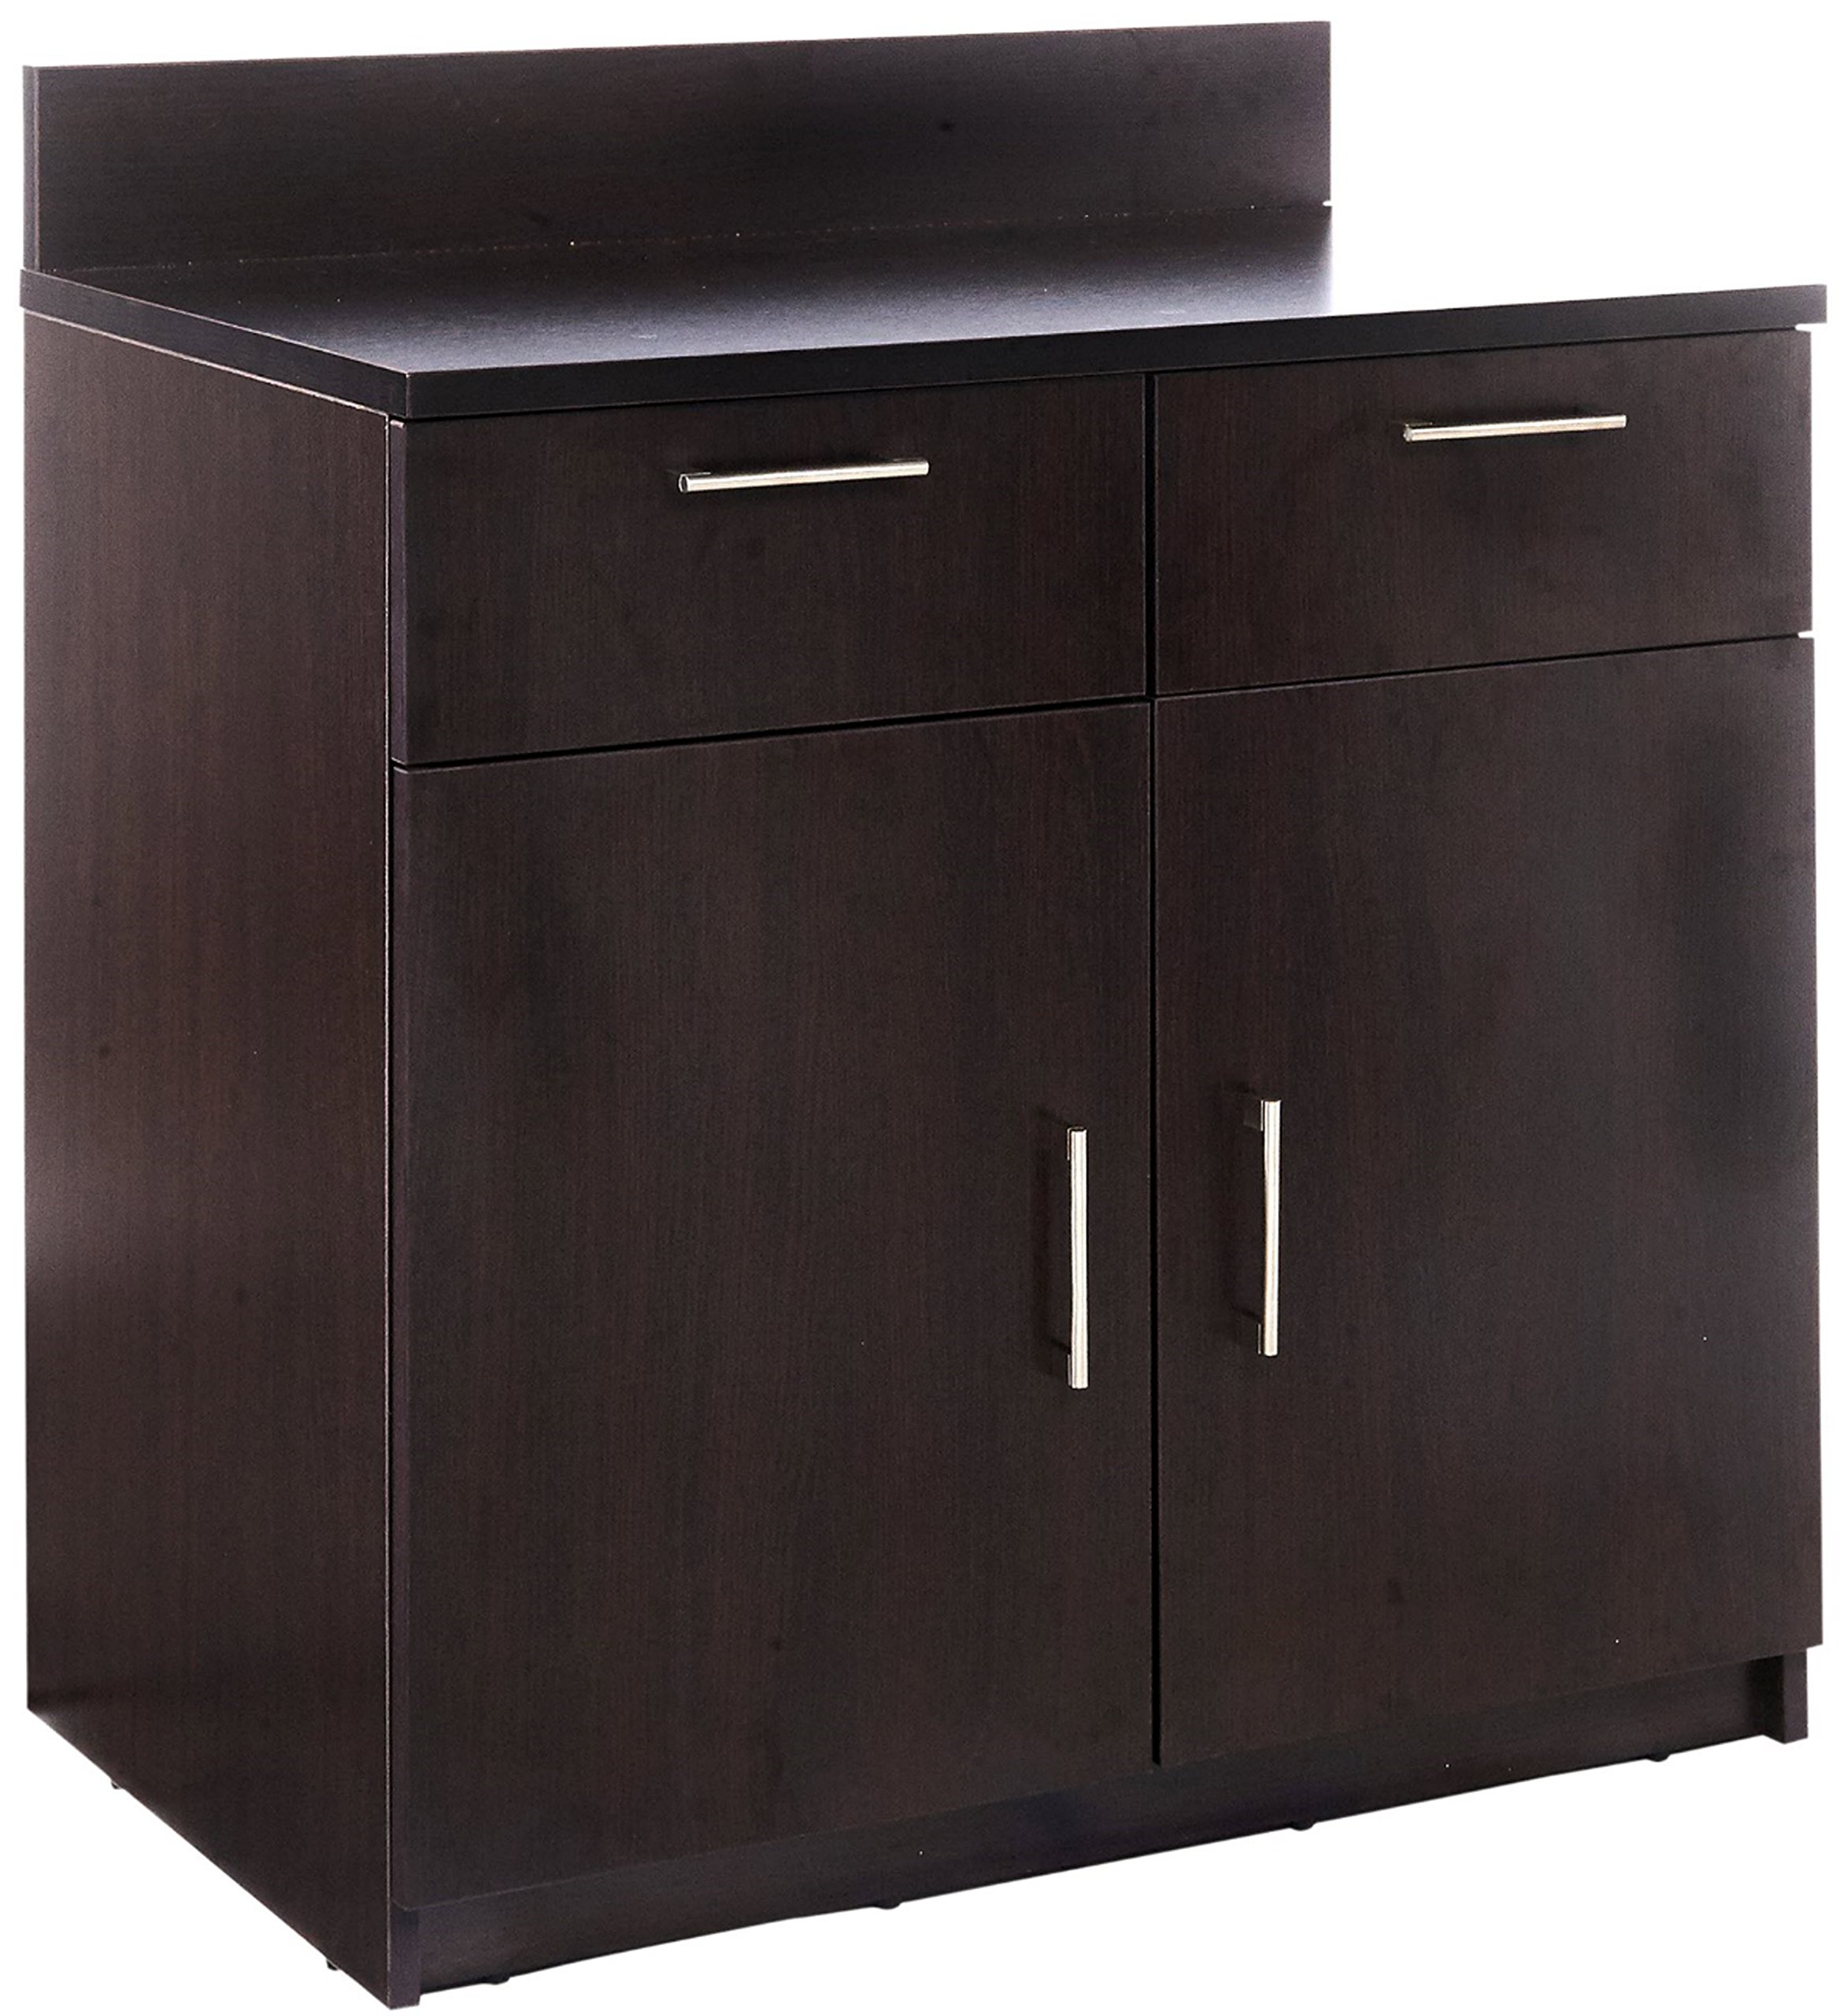 Breaktime 1 Piece Group Model 2091 Break Room Lunch Room Cabinet ''Ready-To-Install/Ready-To-Use'', Color Espresso